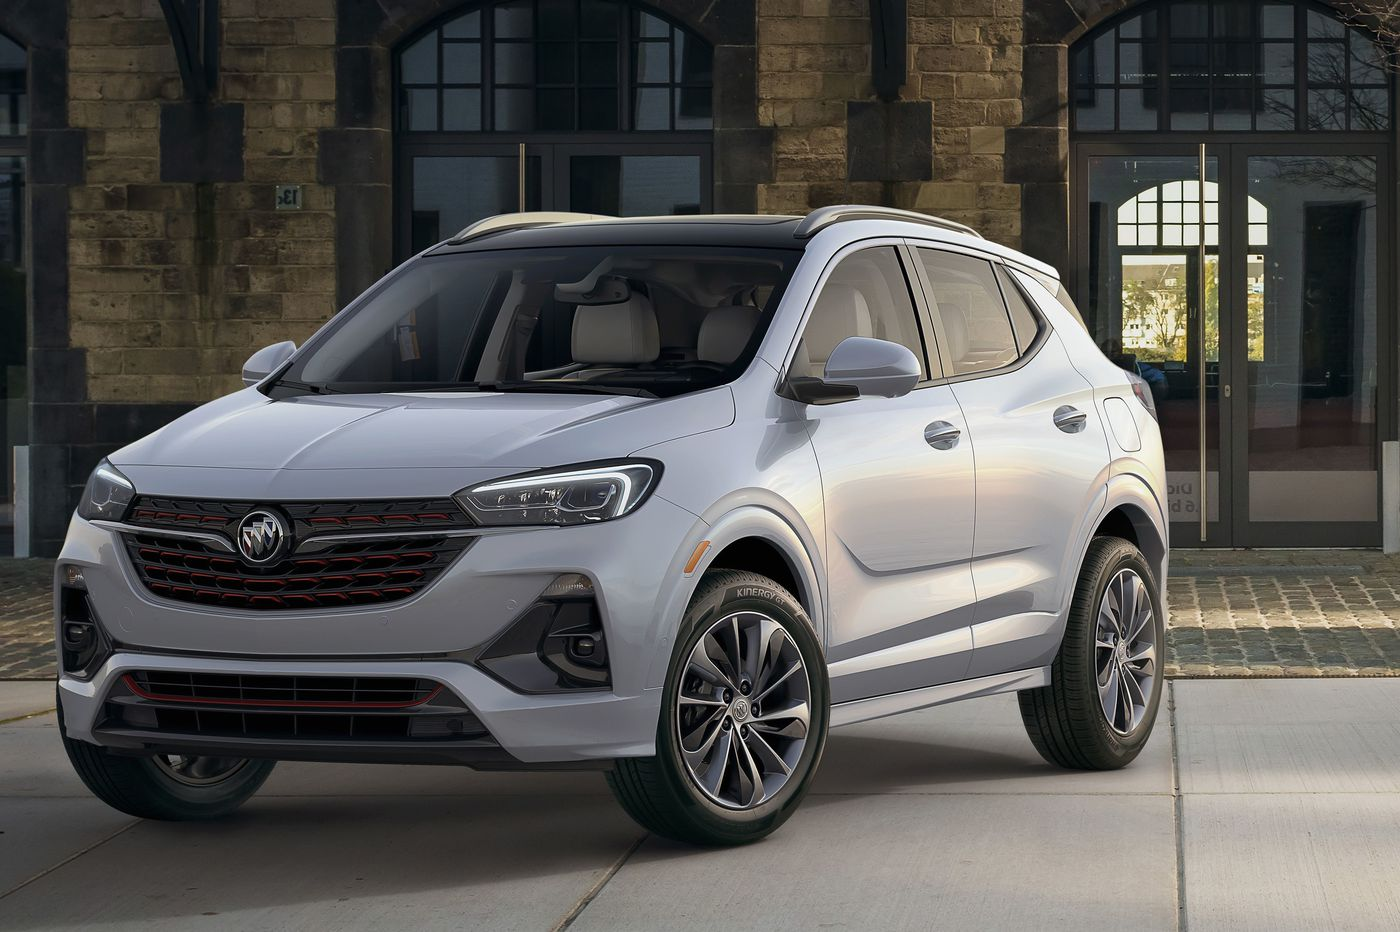 Buick Encore GX: Bigger and stronger, but is it really much better?